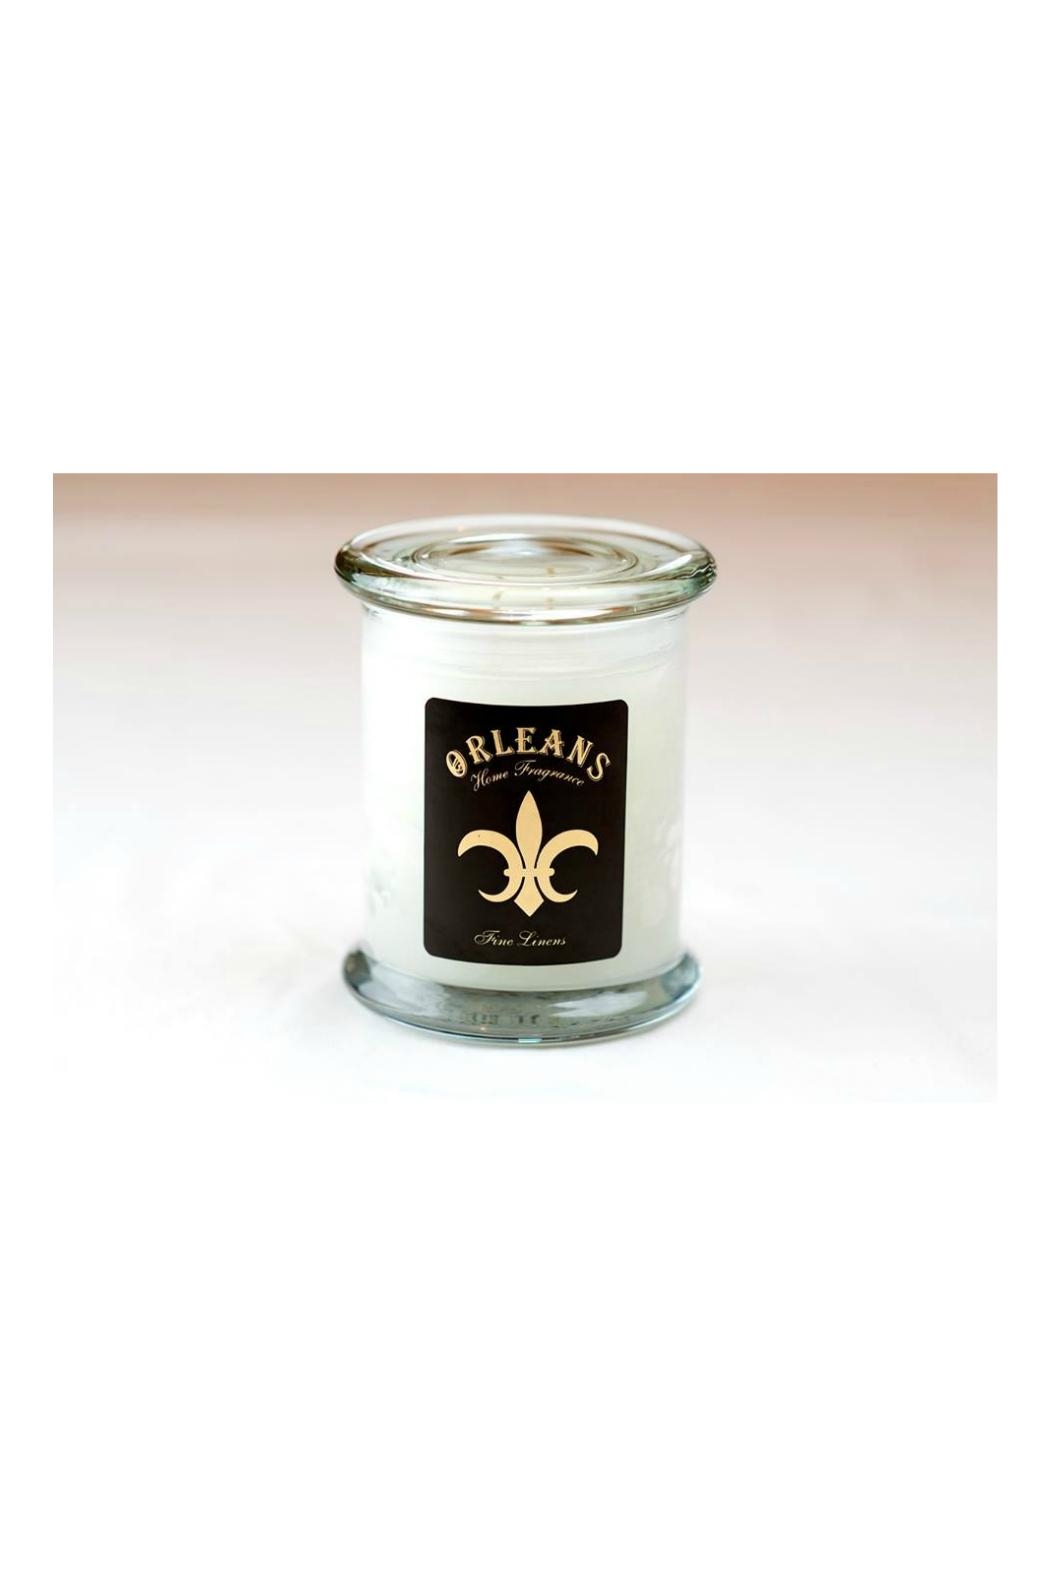 Orleans Home Fragrance Fine/linens Orleans Candle - Main Image